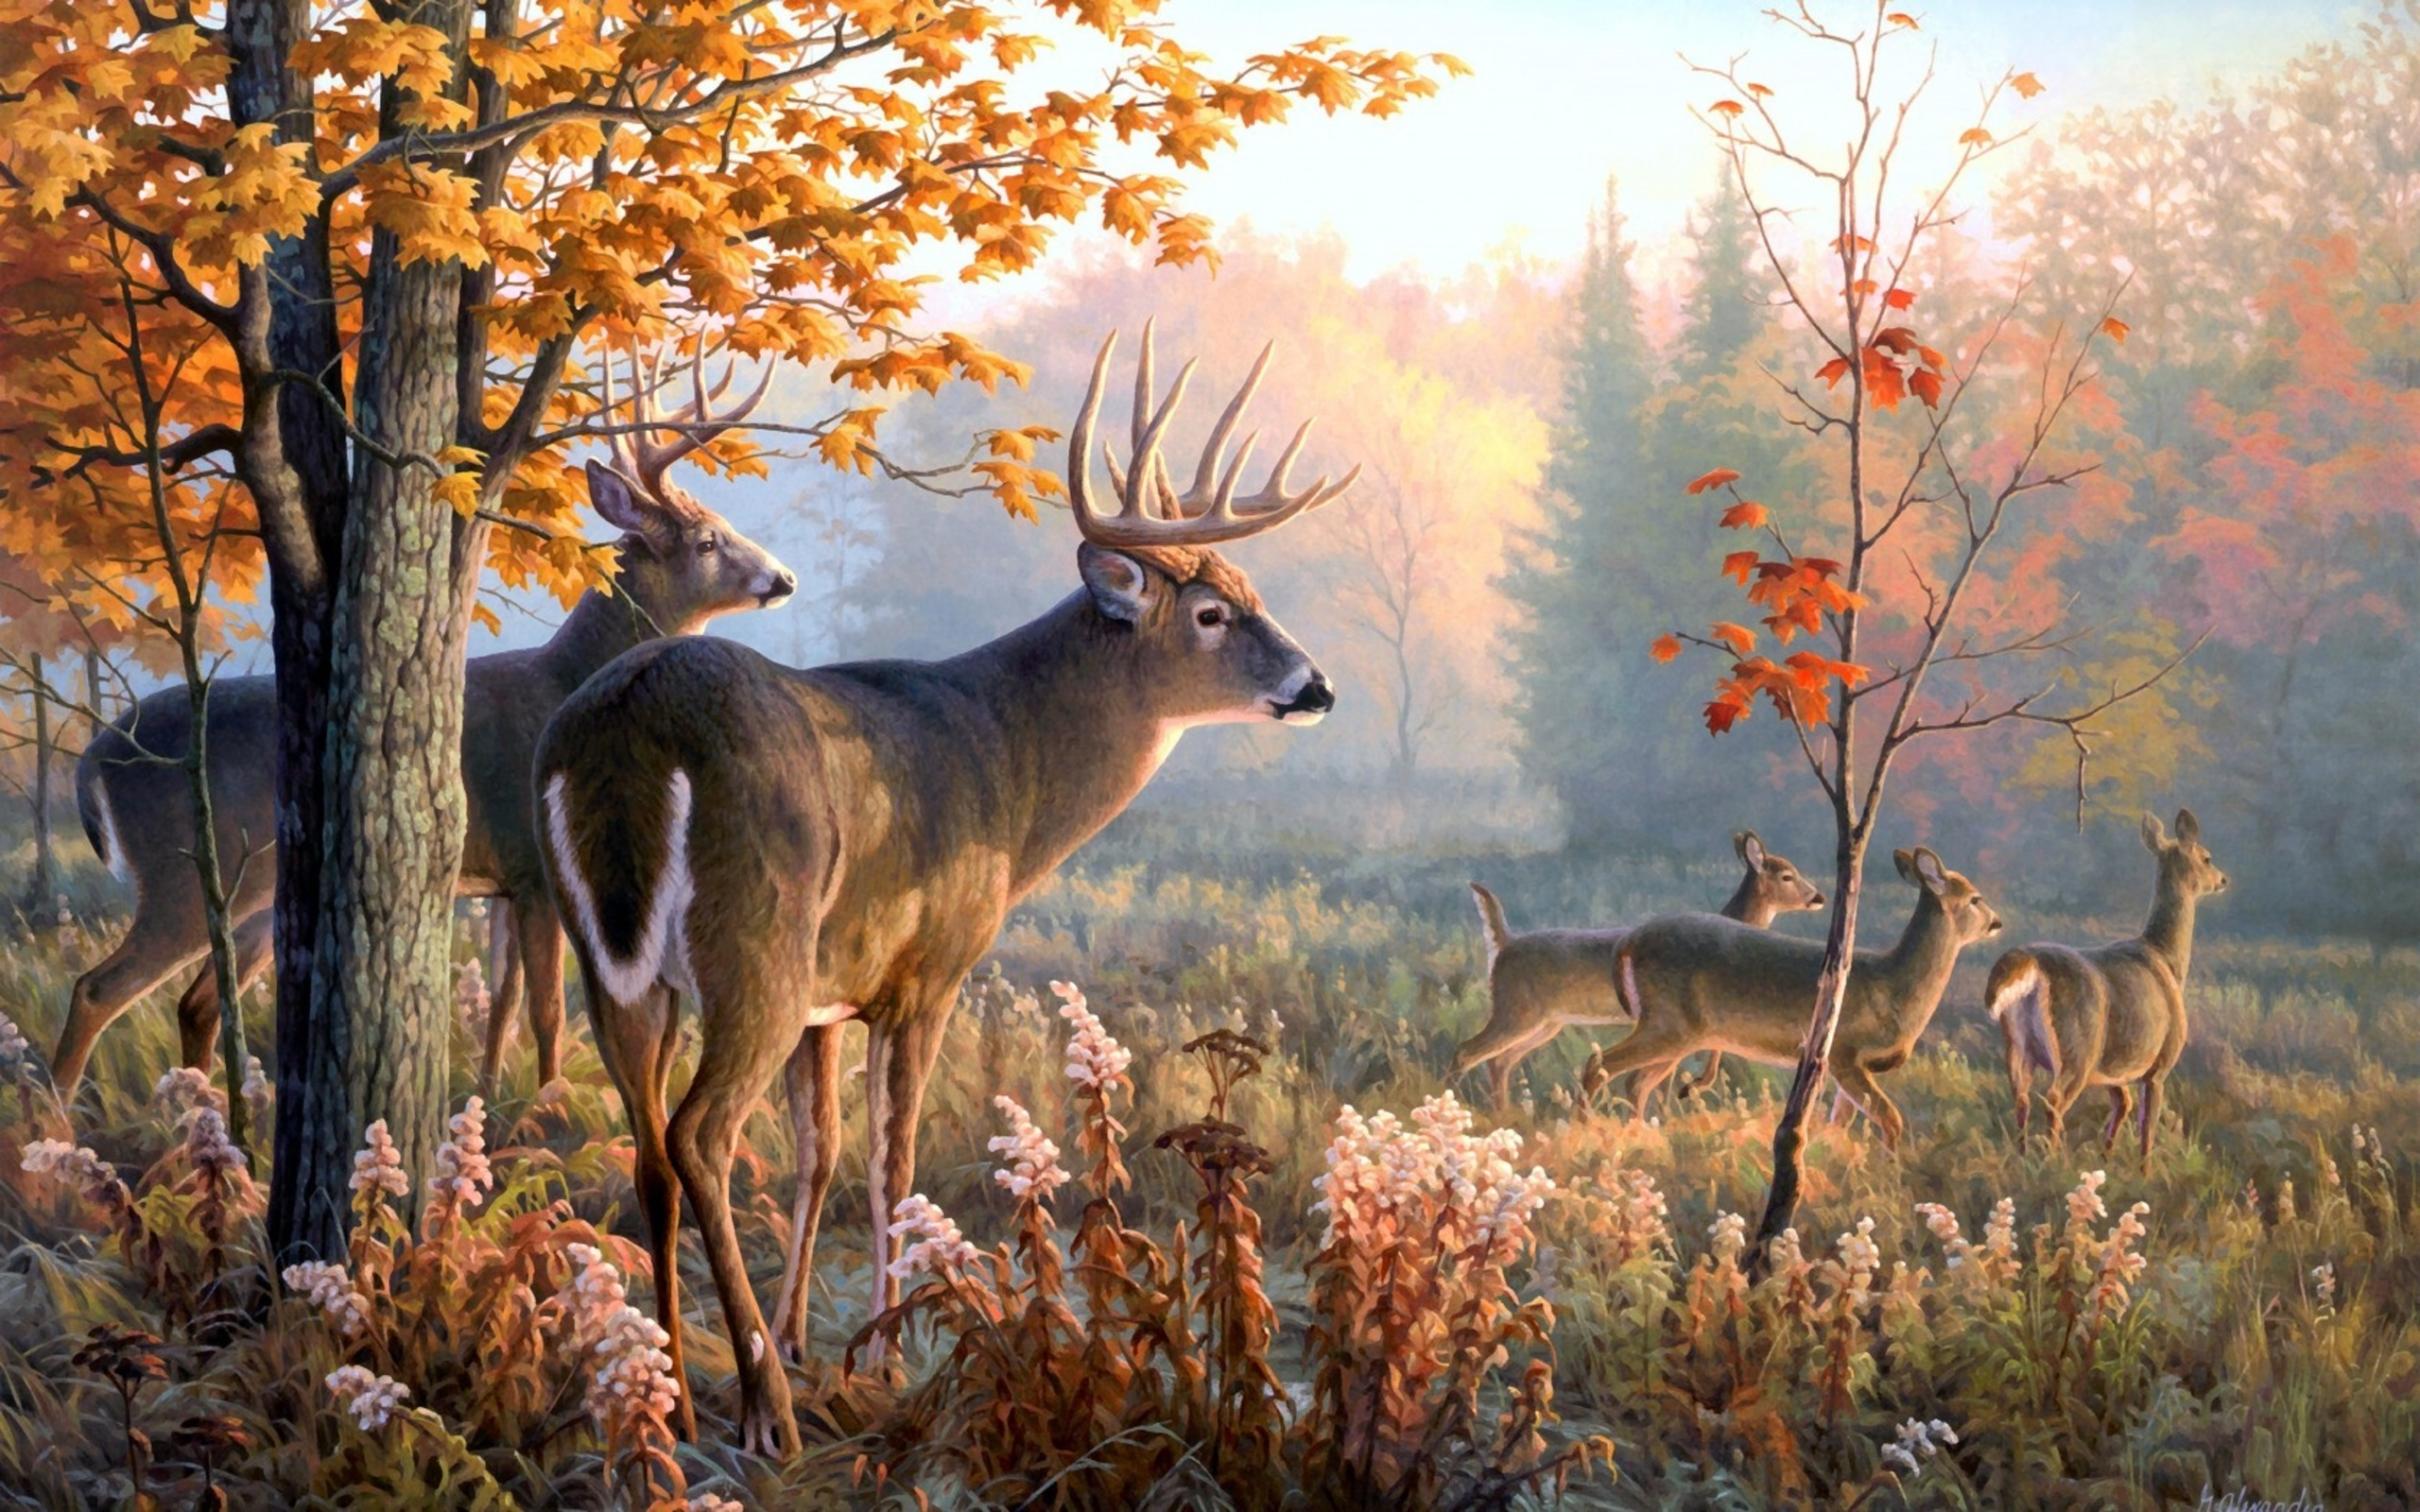 Deer Art Wallpaper wallpaper Deer Art Wallpaper hd wallpaper 2560x1600